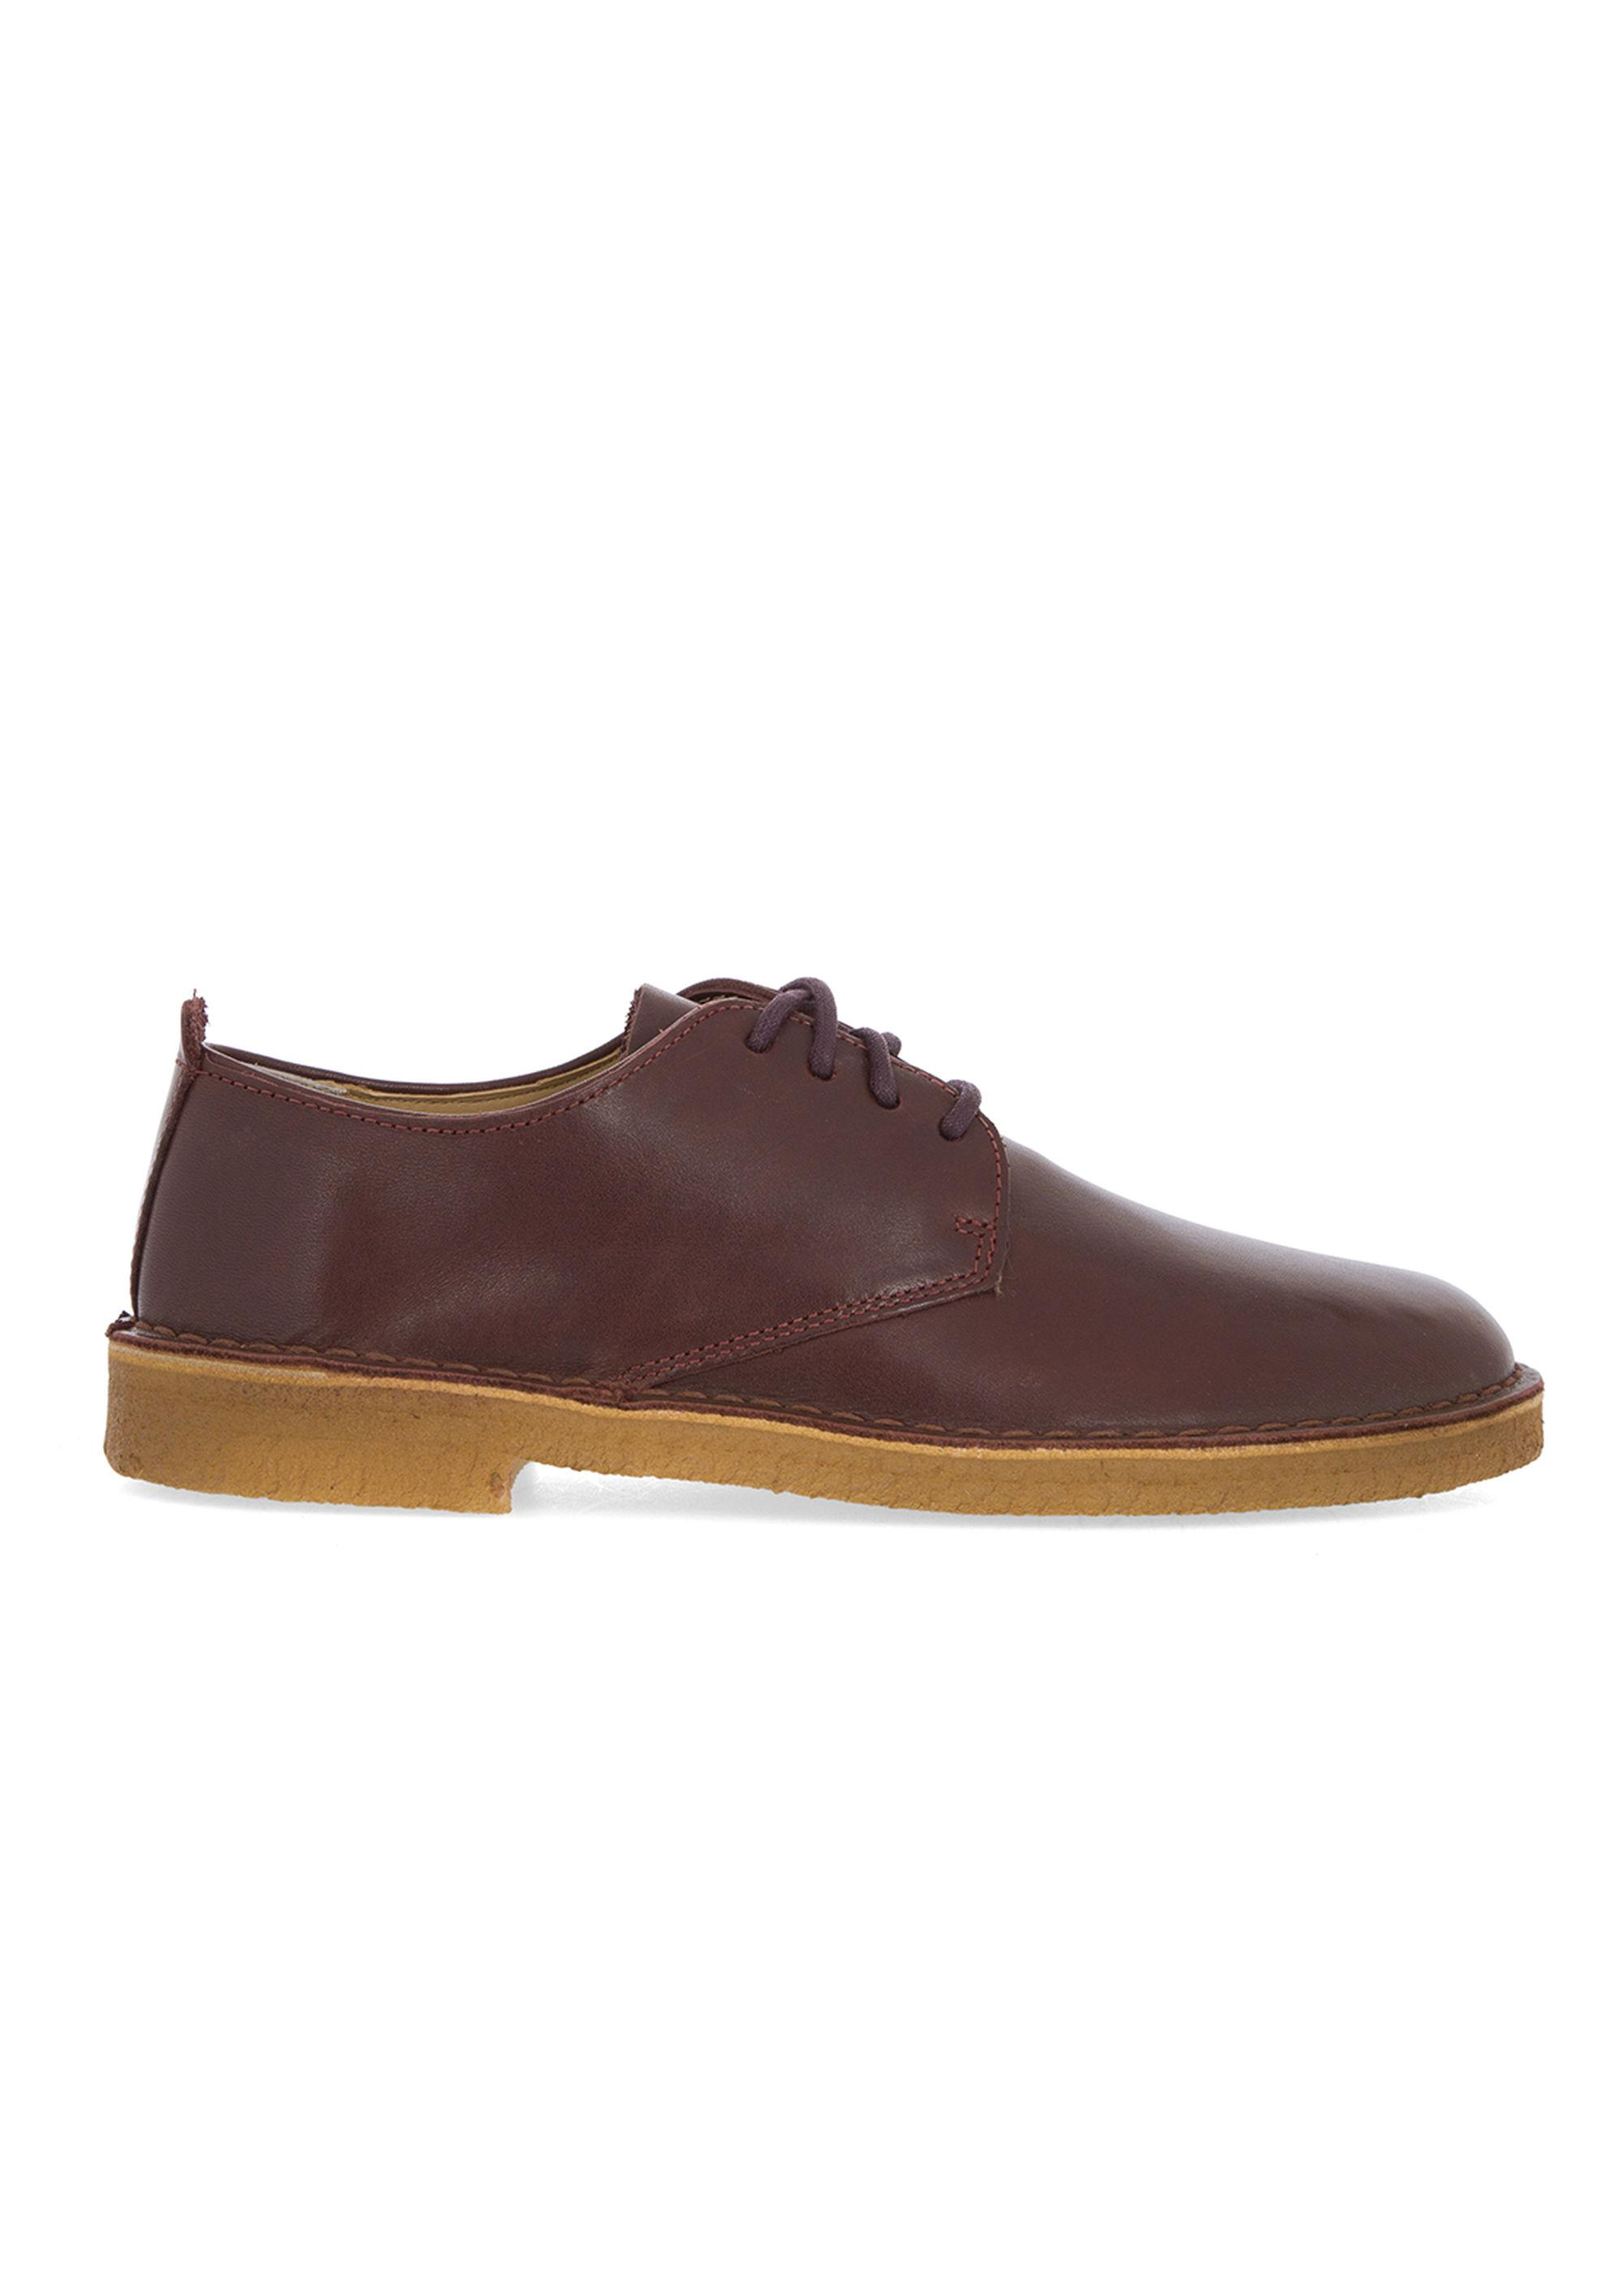 clarks light brown suede desert boots in brown for